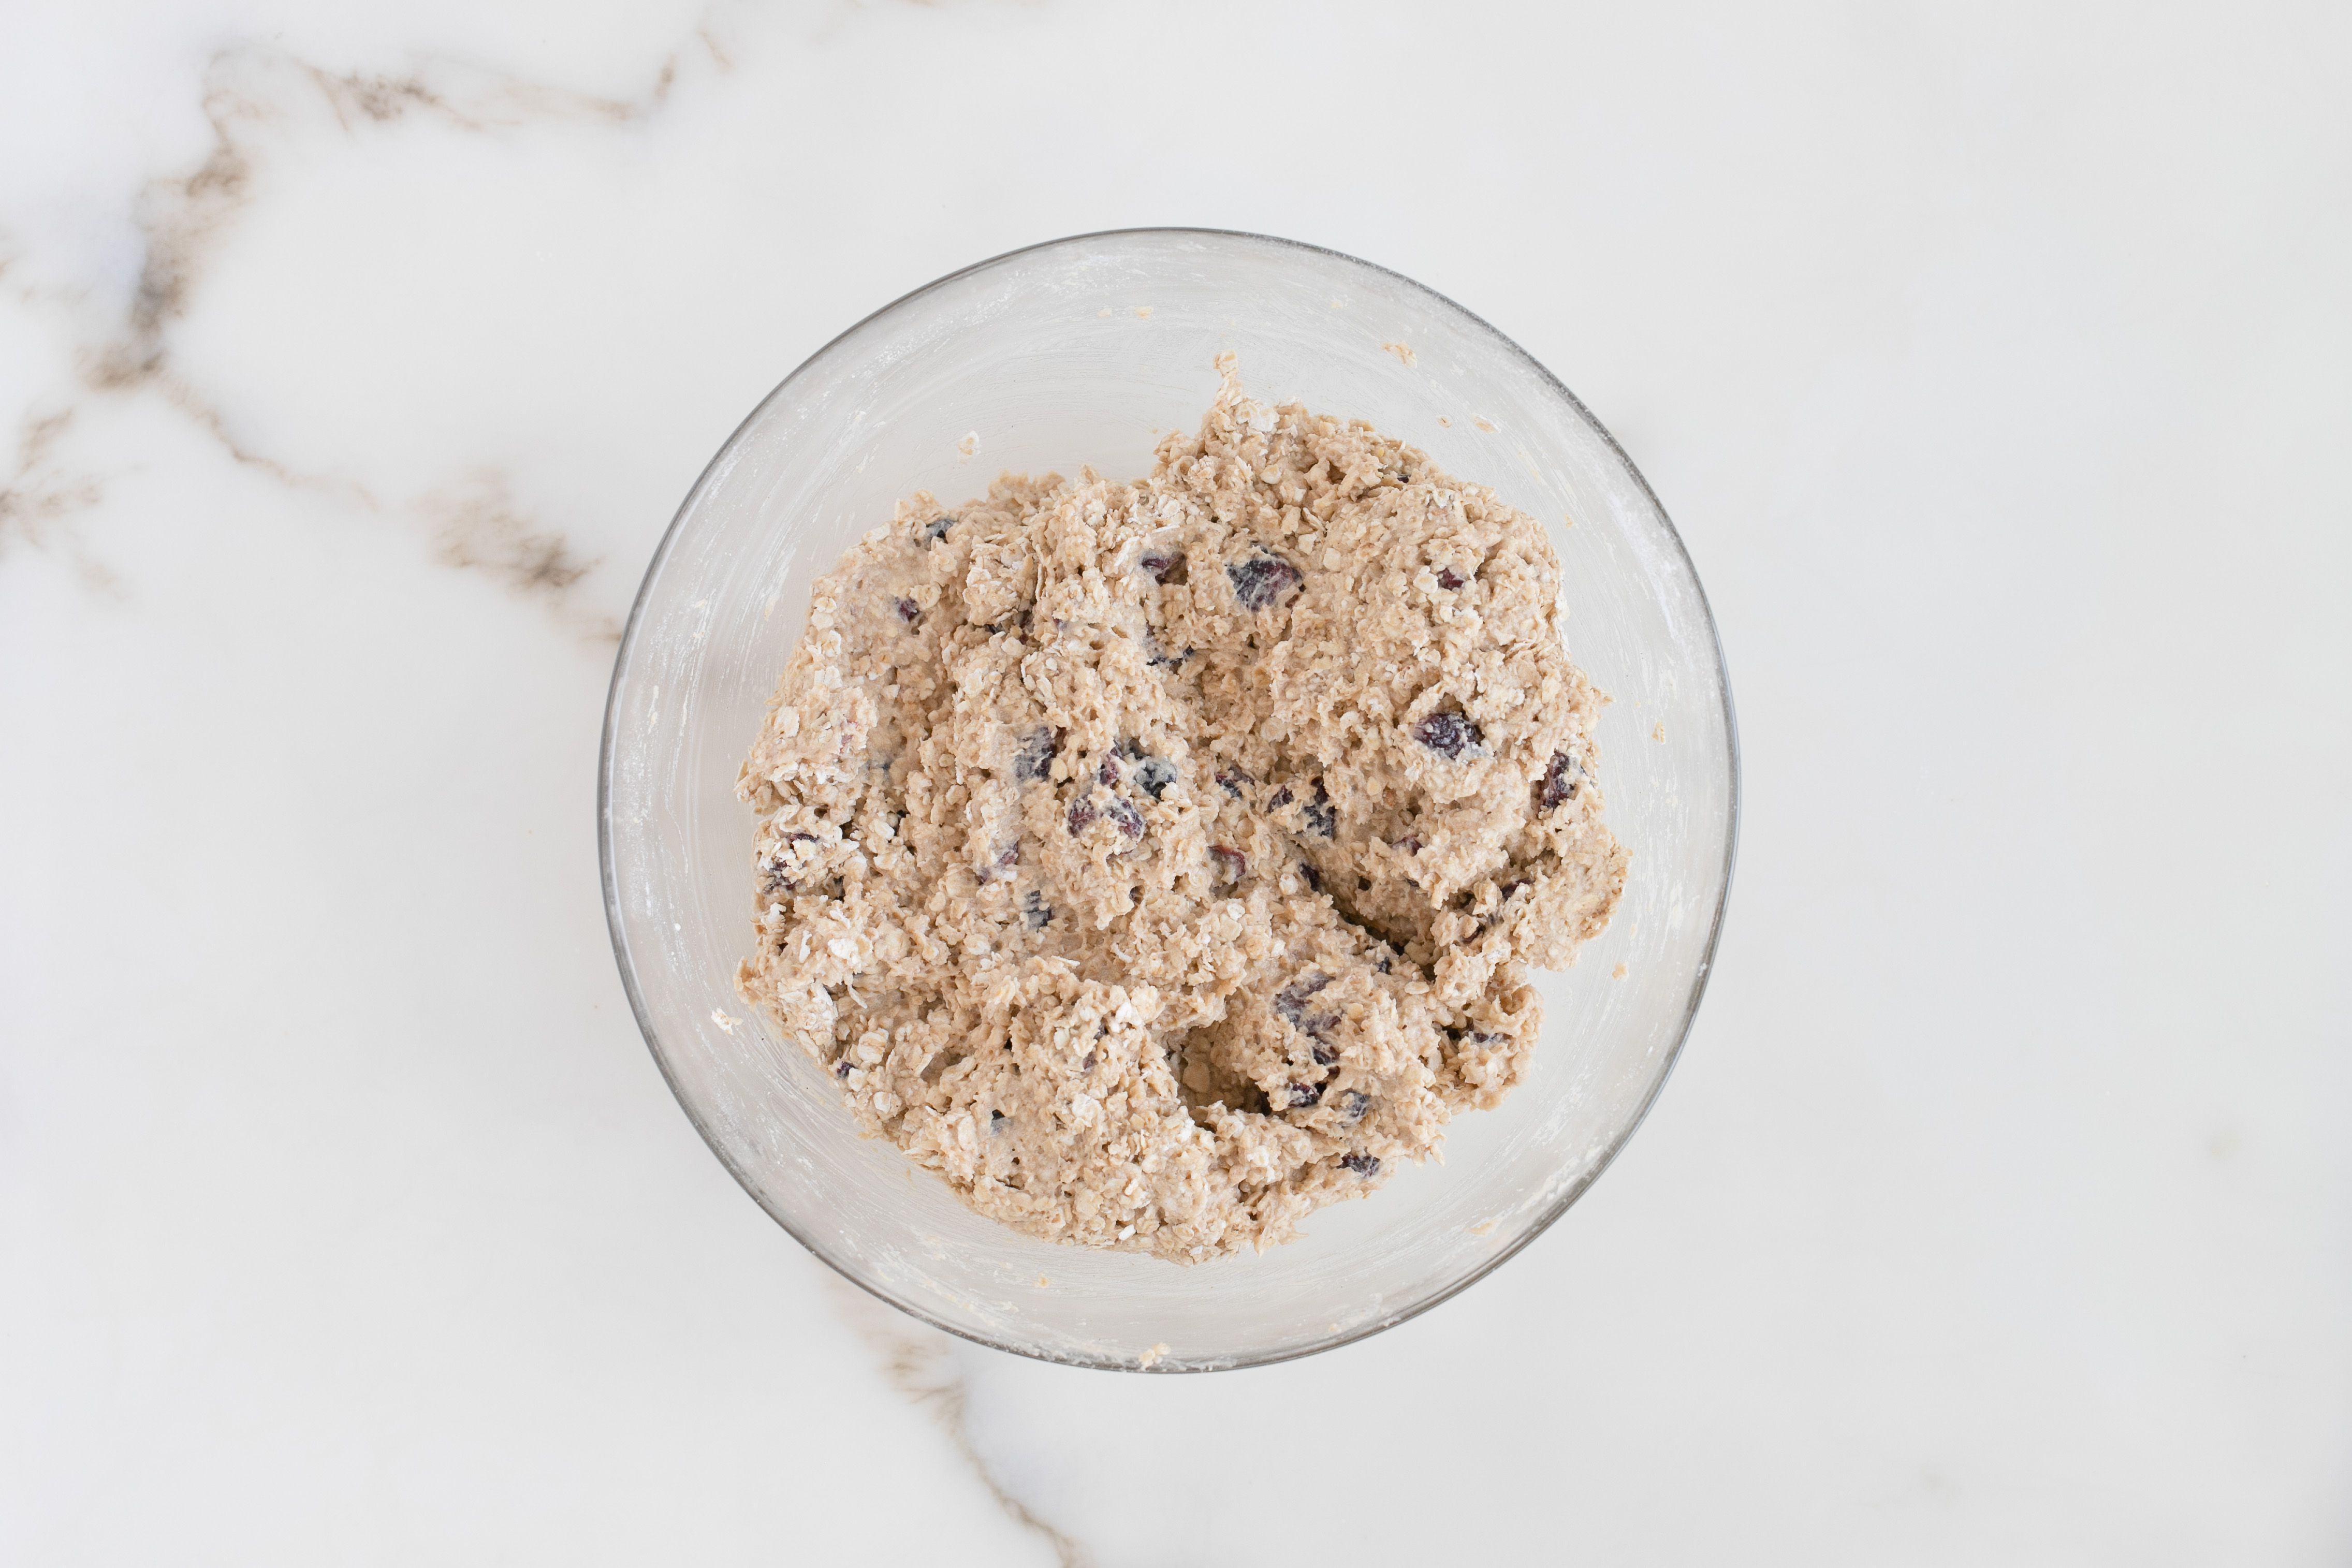 Stir in quick cooking oats